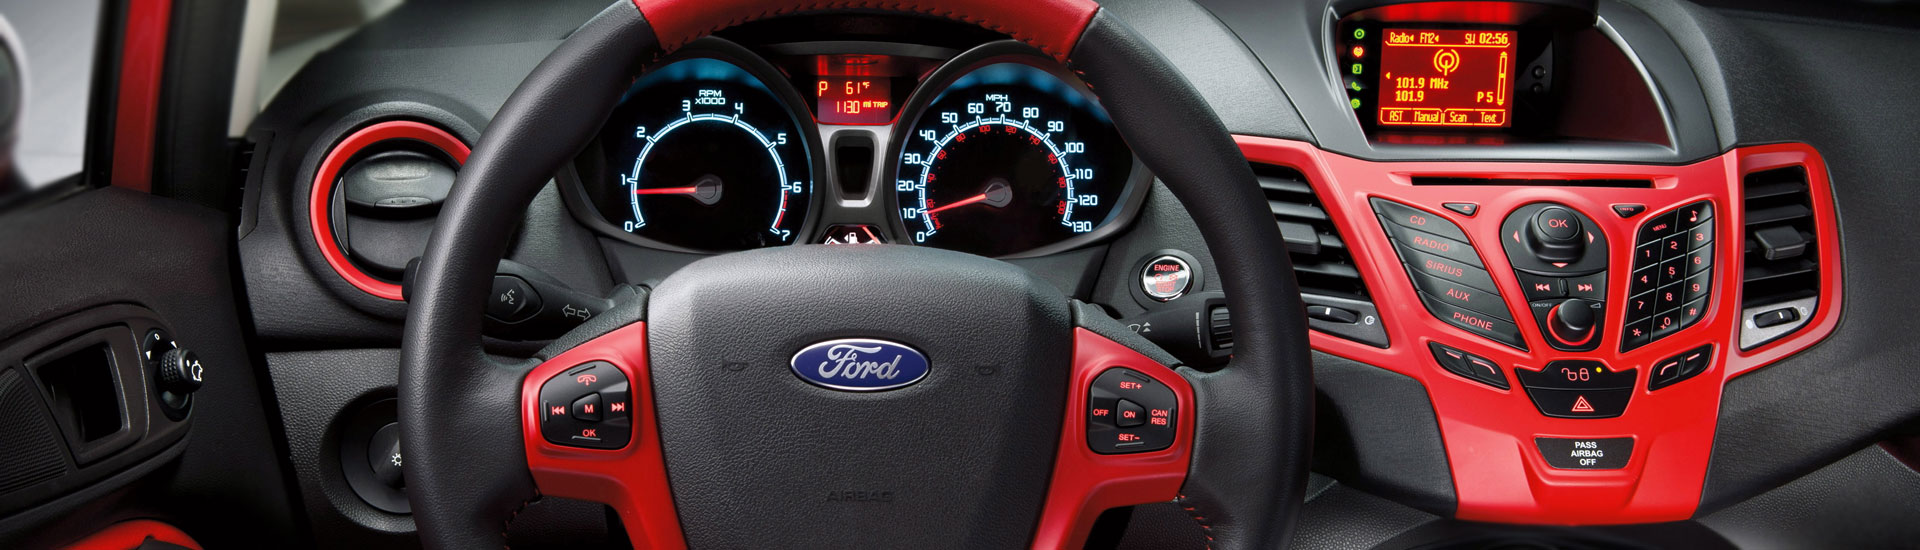 2004 Ford Taurus Custom Dash Kits